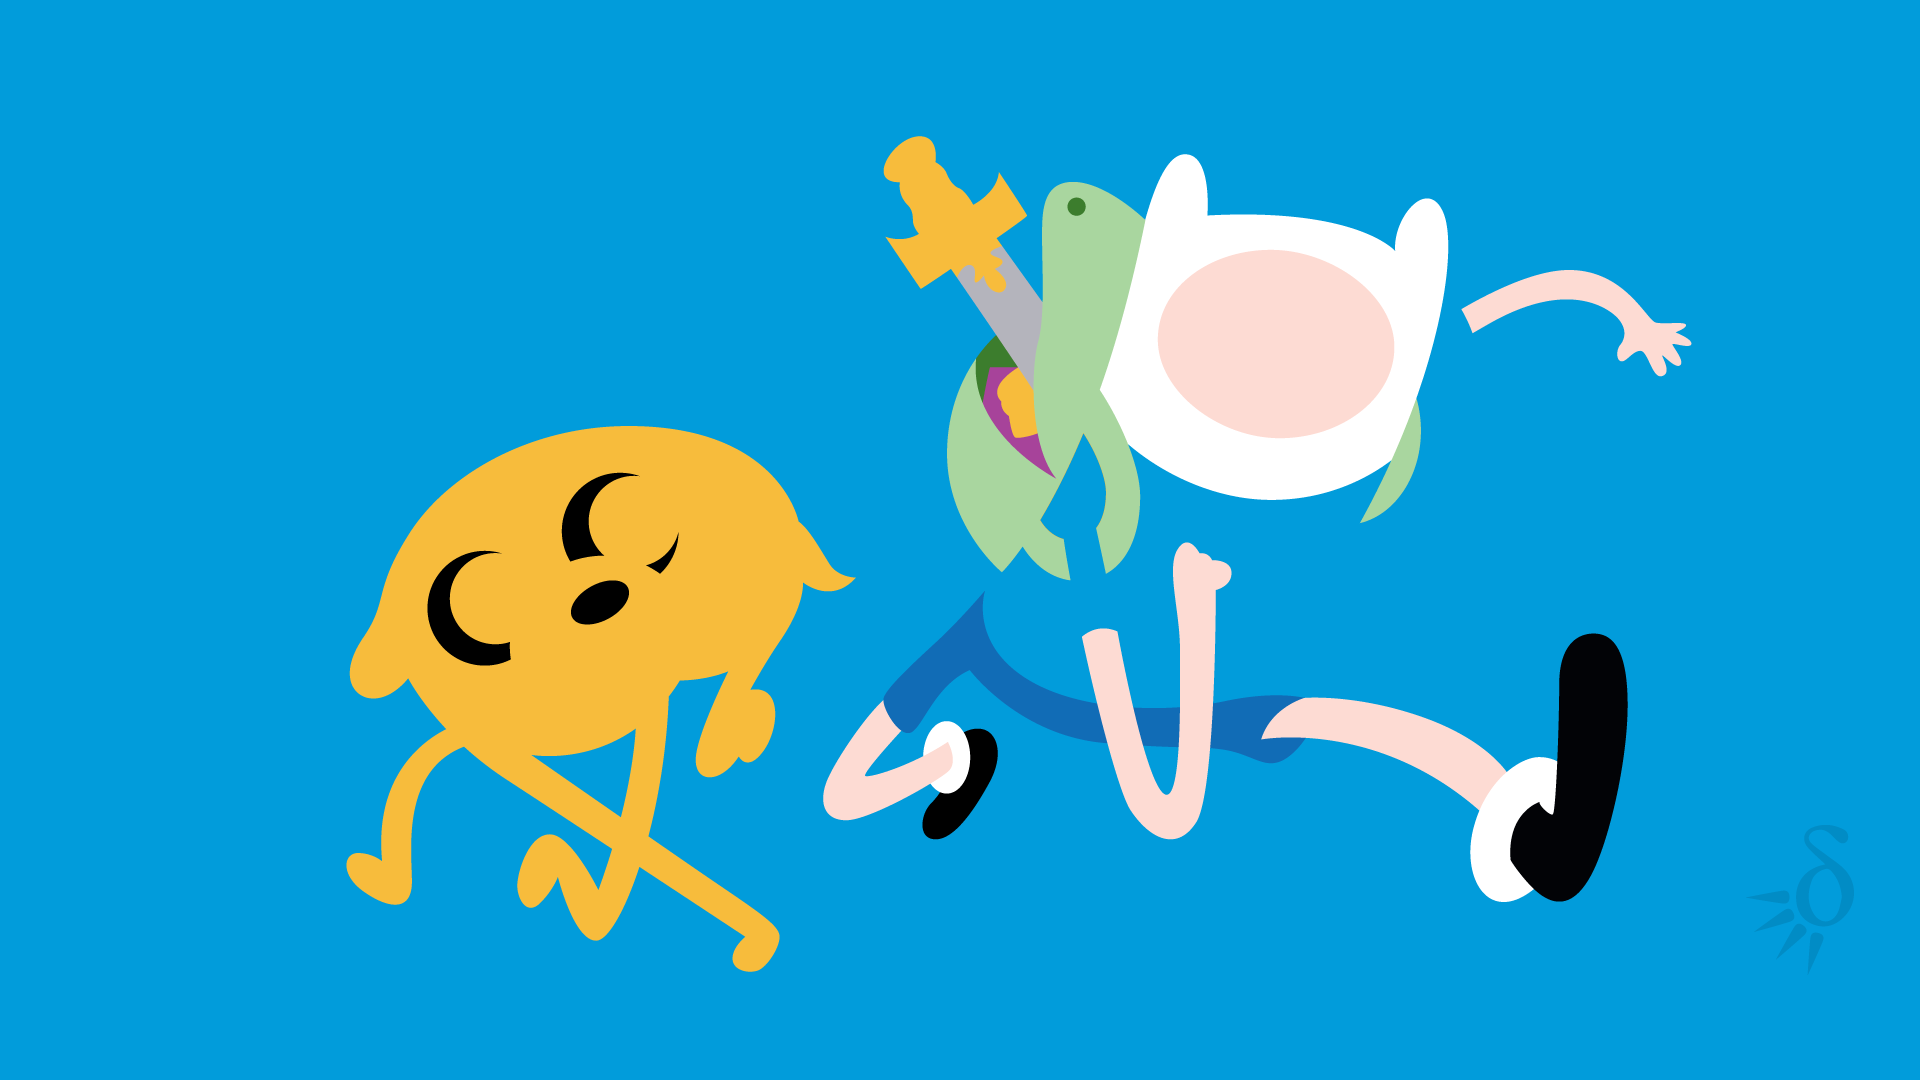 Adventure Time With Finn And Jake wallpaper   1141130 1920x1080